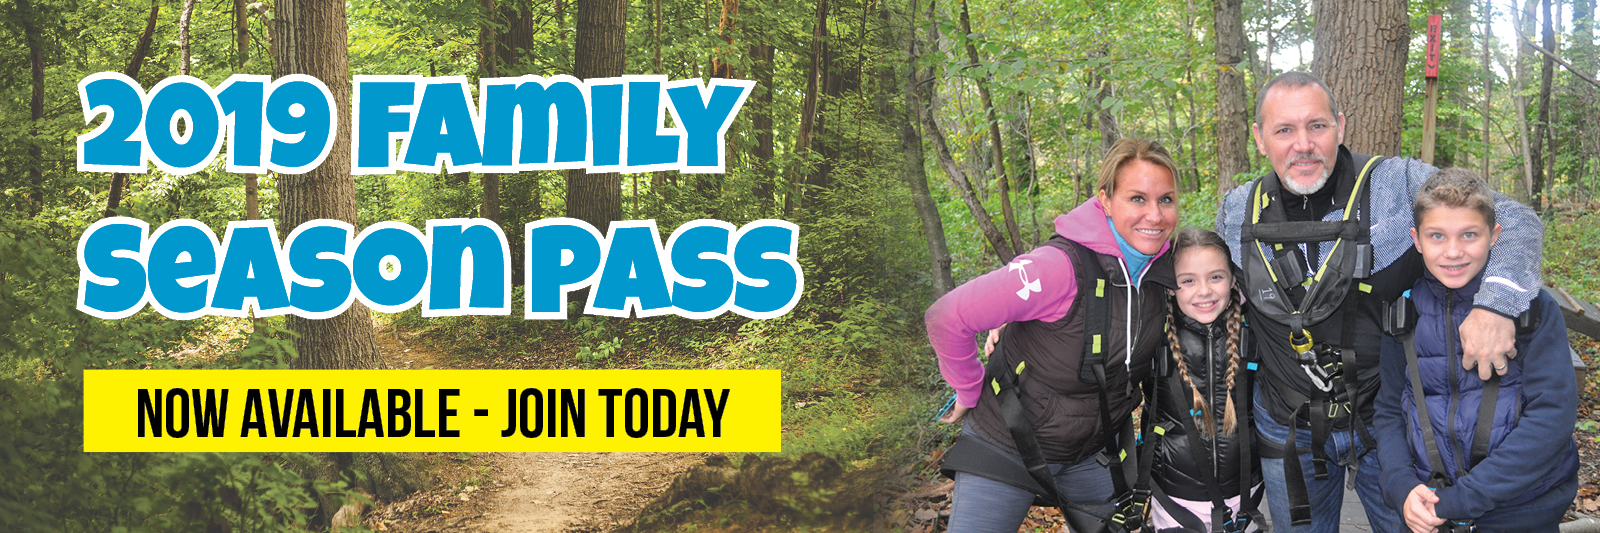 Buy a Season Pass for Your Family at Treehouse World Adventure Park